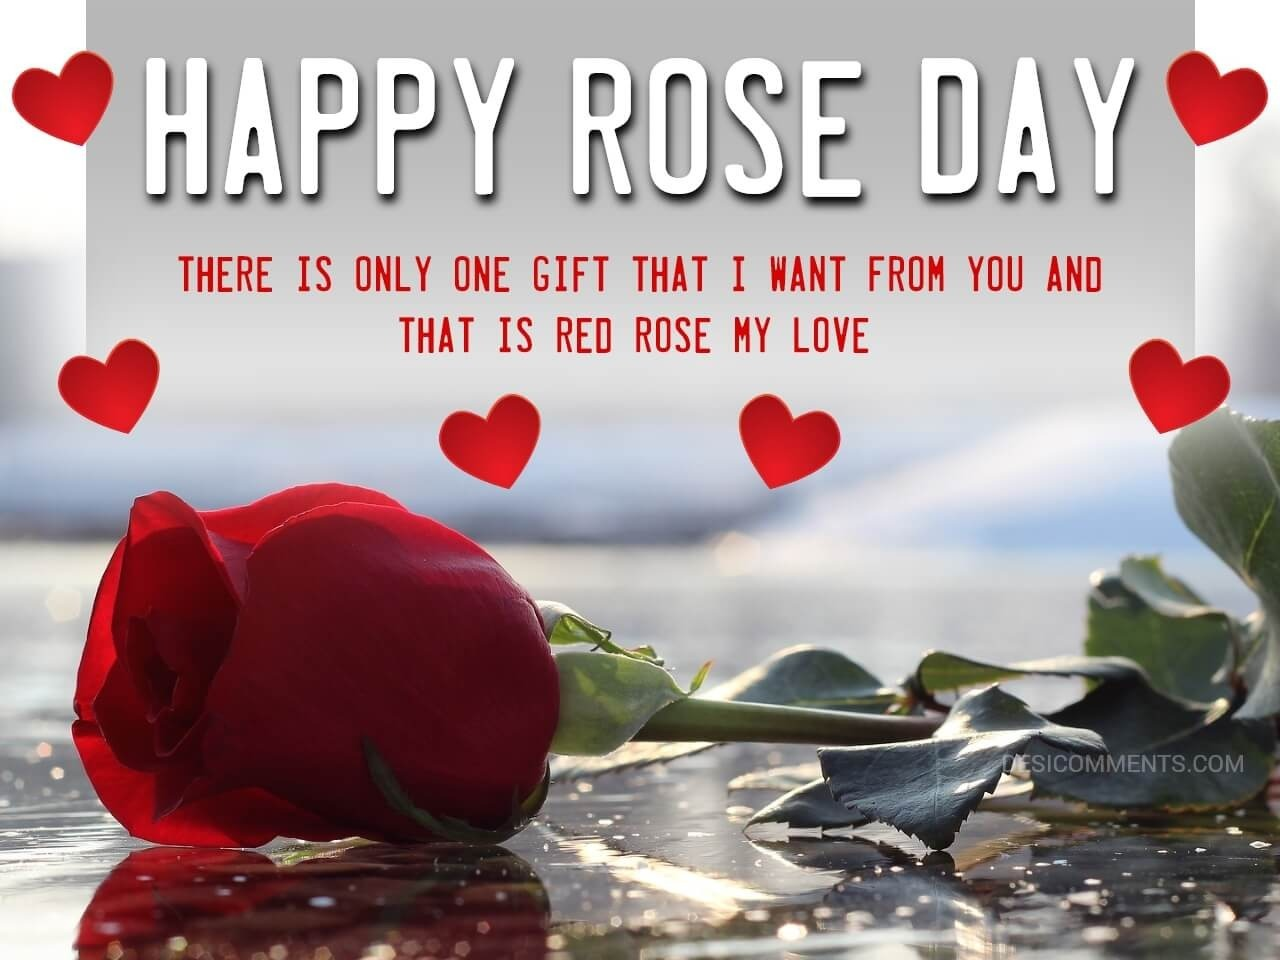 Rose Day Hd Wallpaper